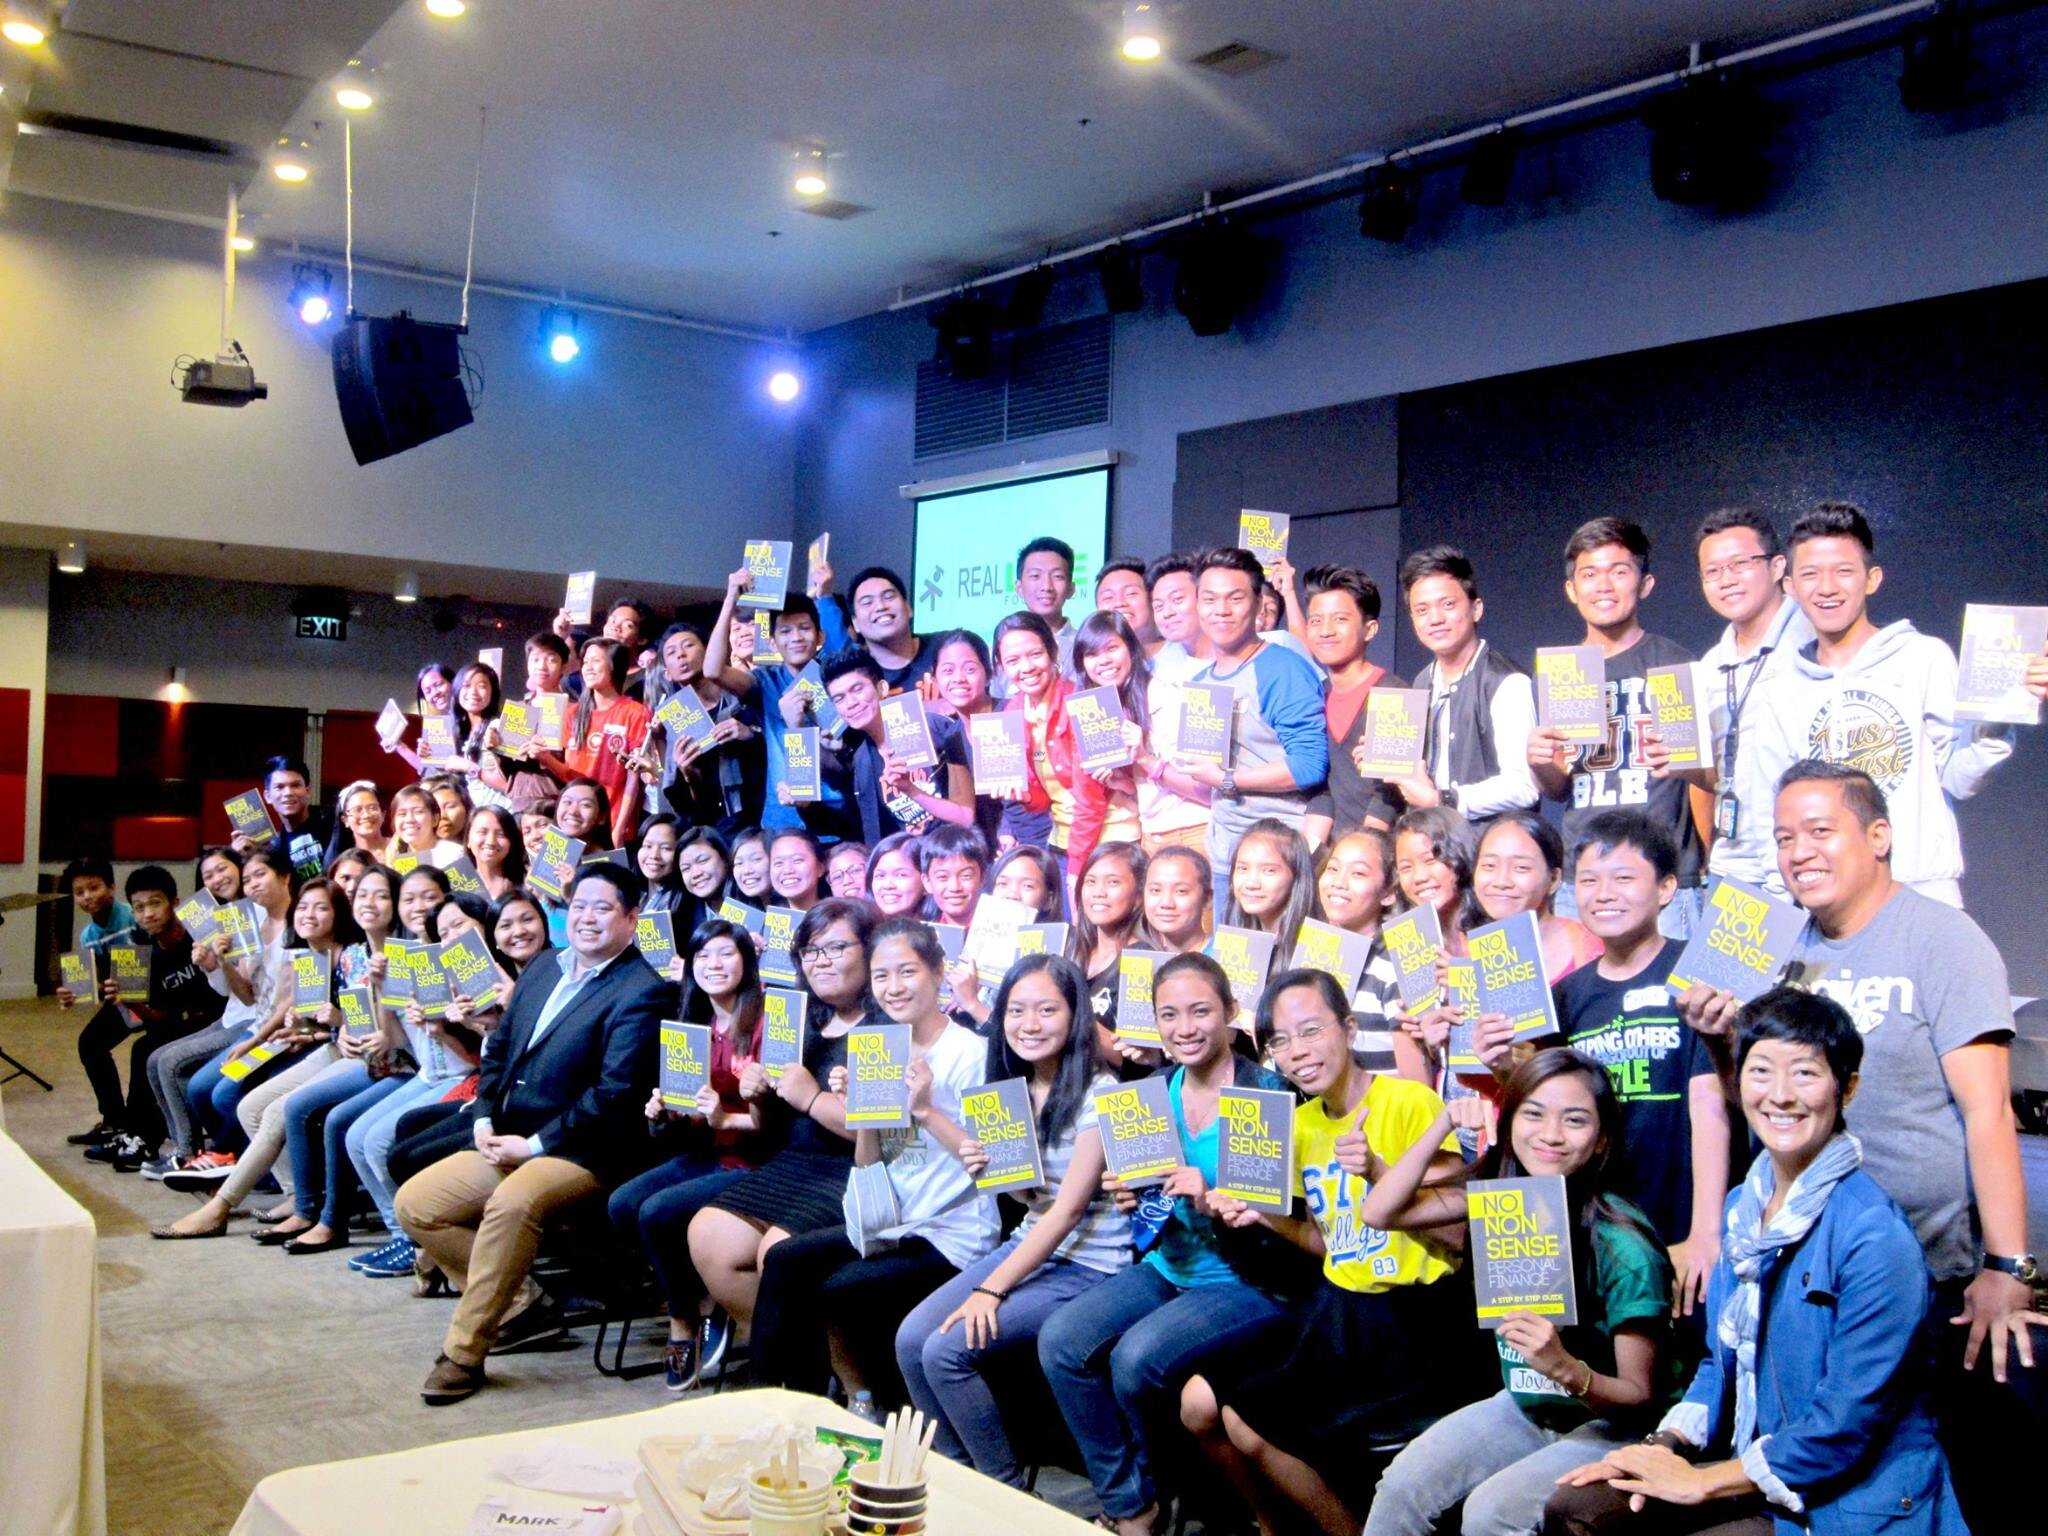 """Randell Tiongson with Real LIFE scholars when he did a financial training for them in 2015. He also gave them copies of his book """"No Non-Sense Personal Finance""""."""